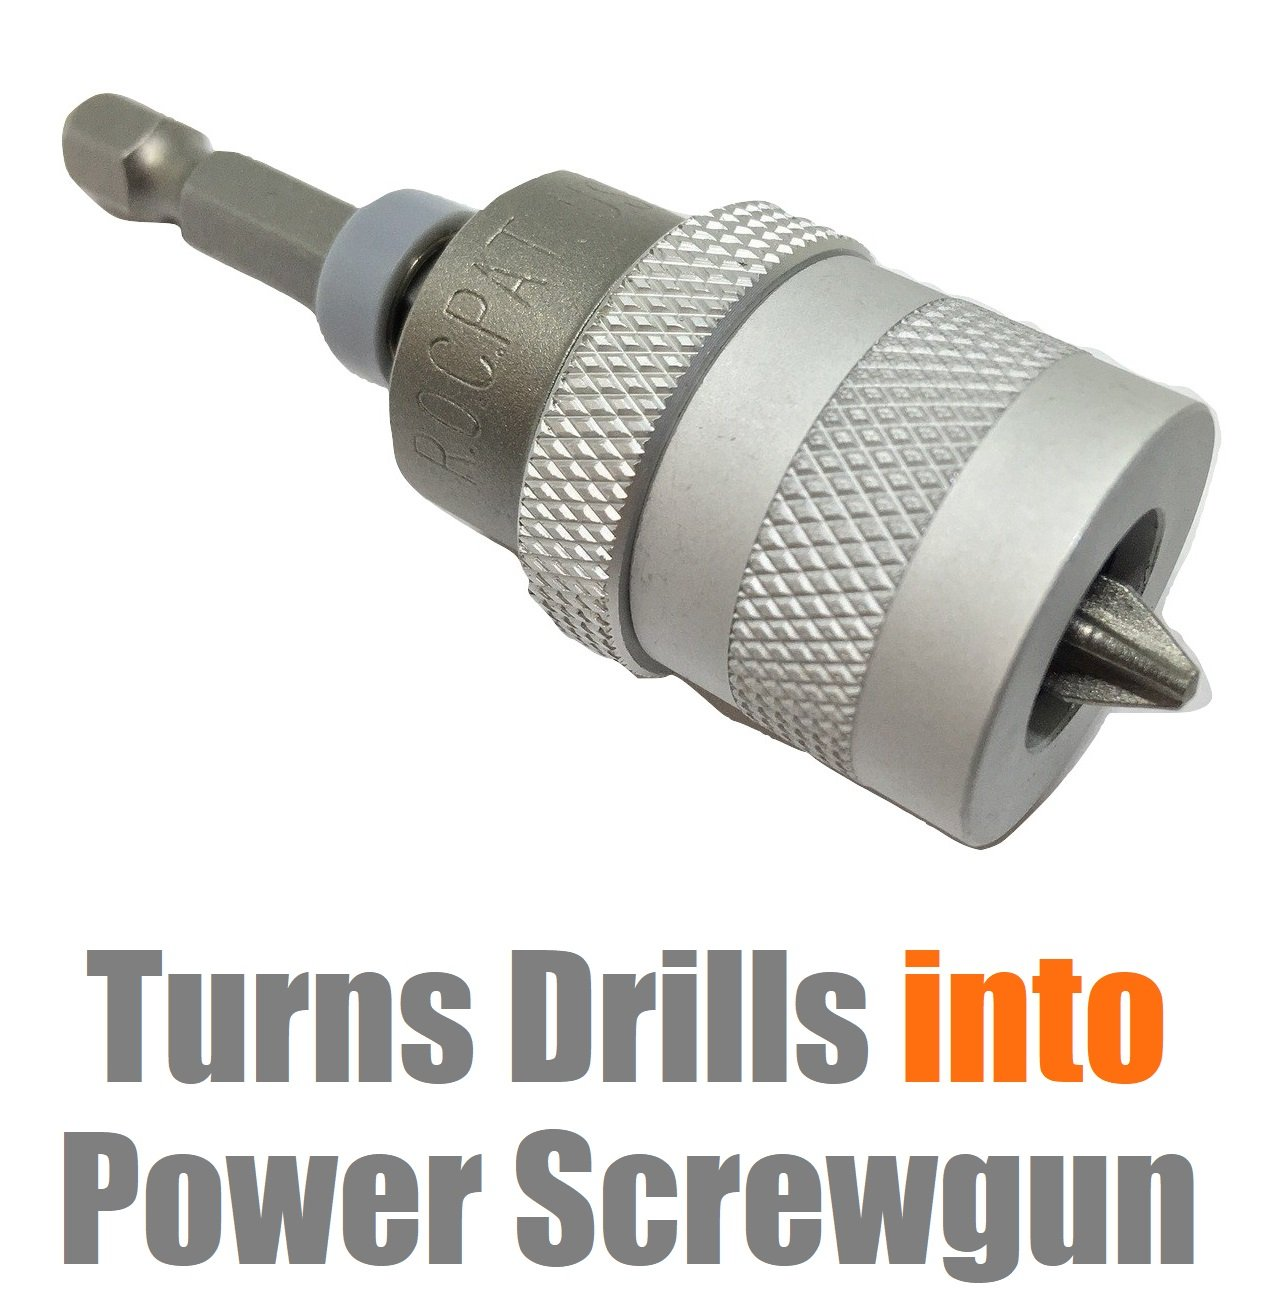 Electric Drill to Screw Gun CONVERTER Countersink Counterbore into Drywall Plywood Screwdriver Bit Depth Setter Phillips No 2 Bit Screw Clutch Shank 1/4 Precise Fit For Power and Hand Drills Tool